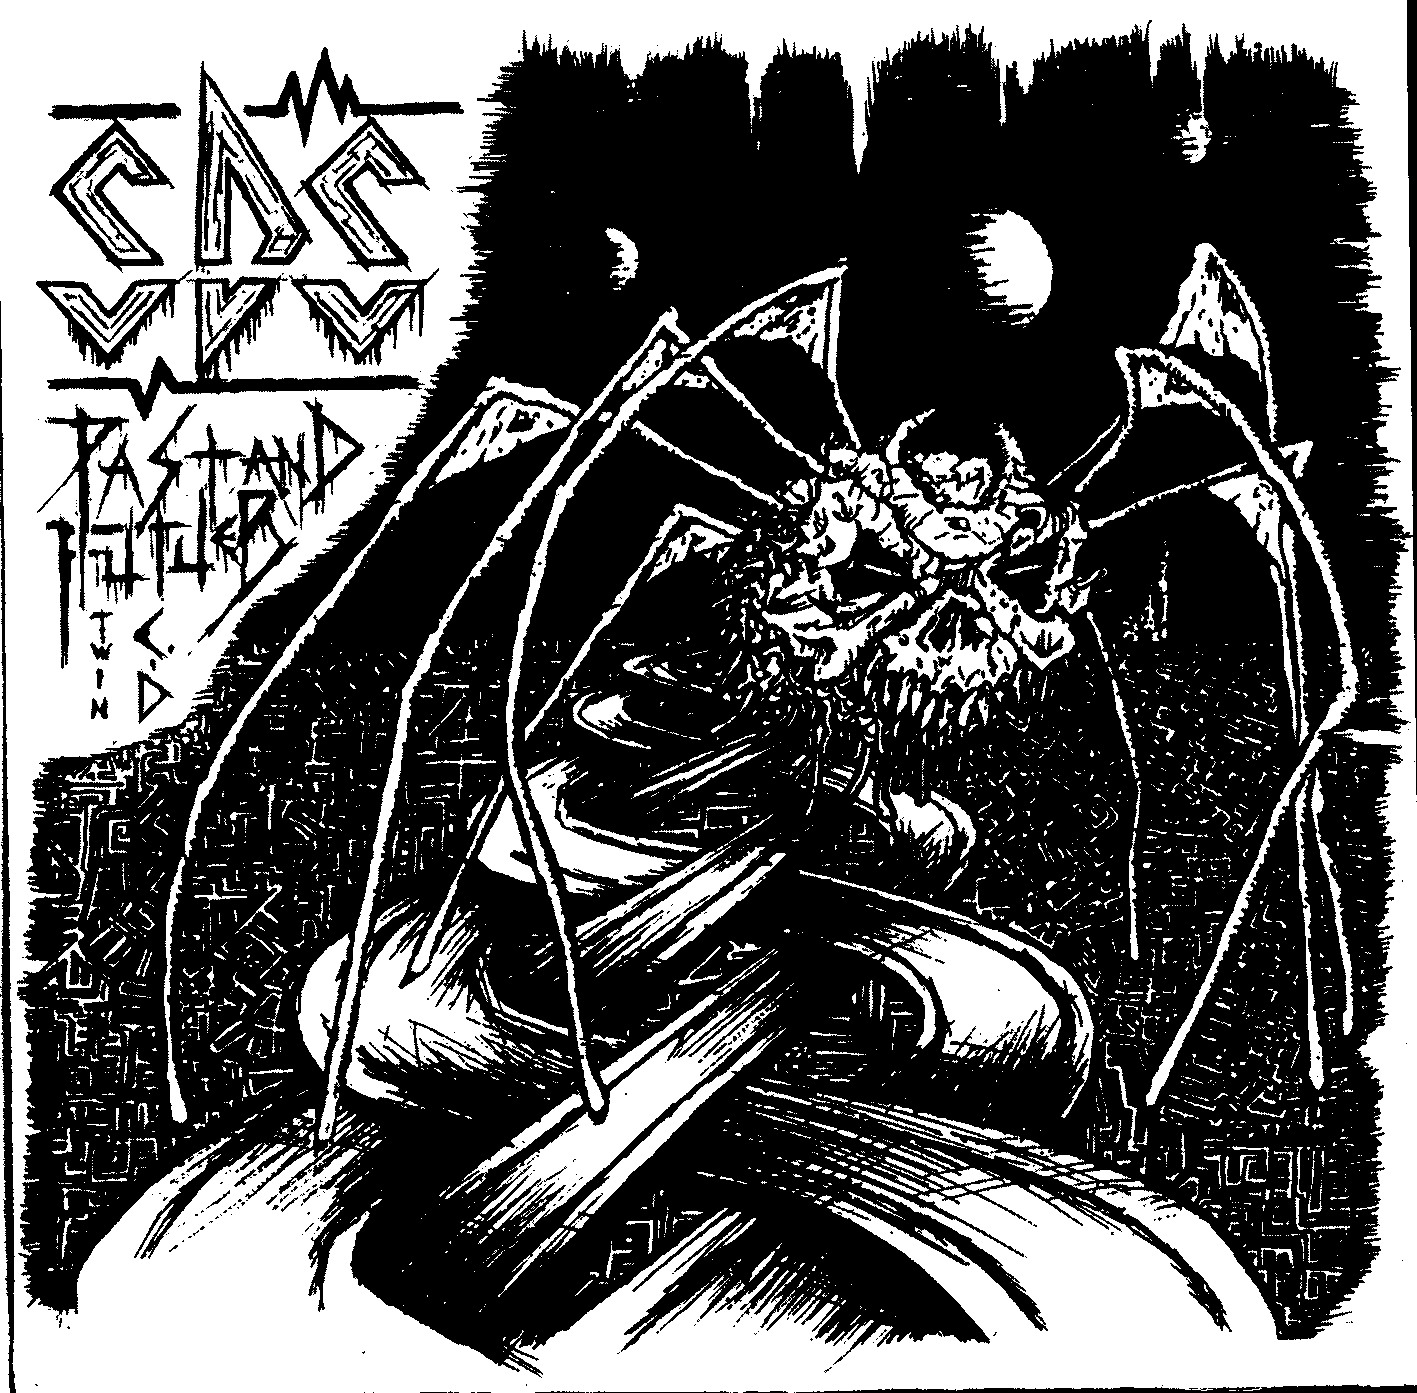 S.D.S. - Past And Future Disc 1 1989/1992